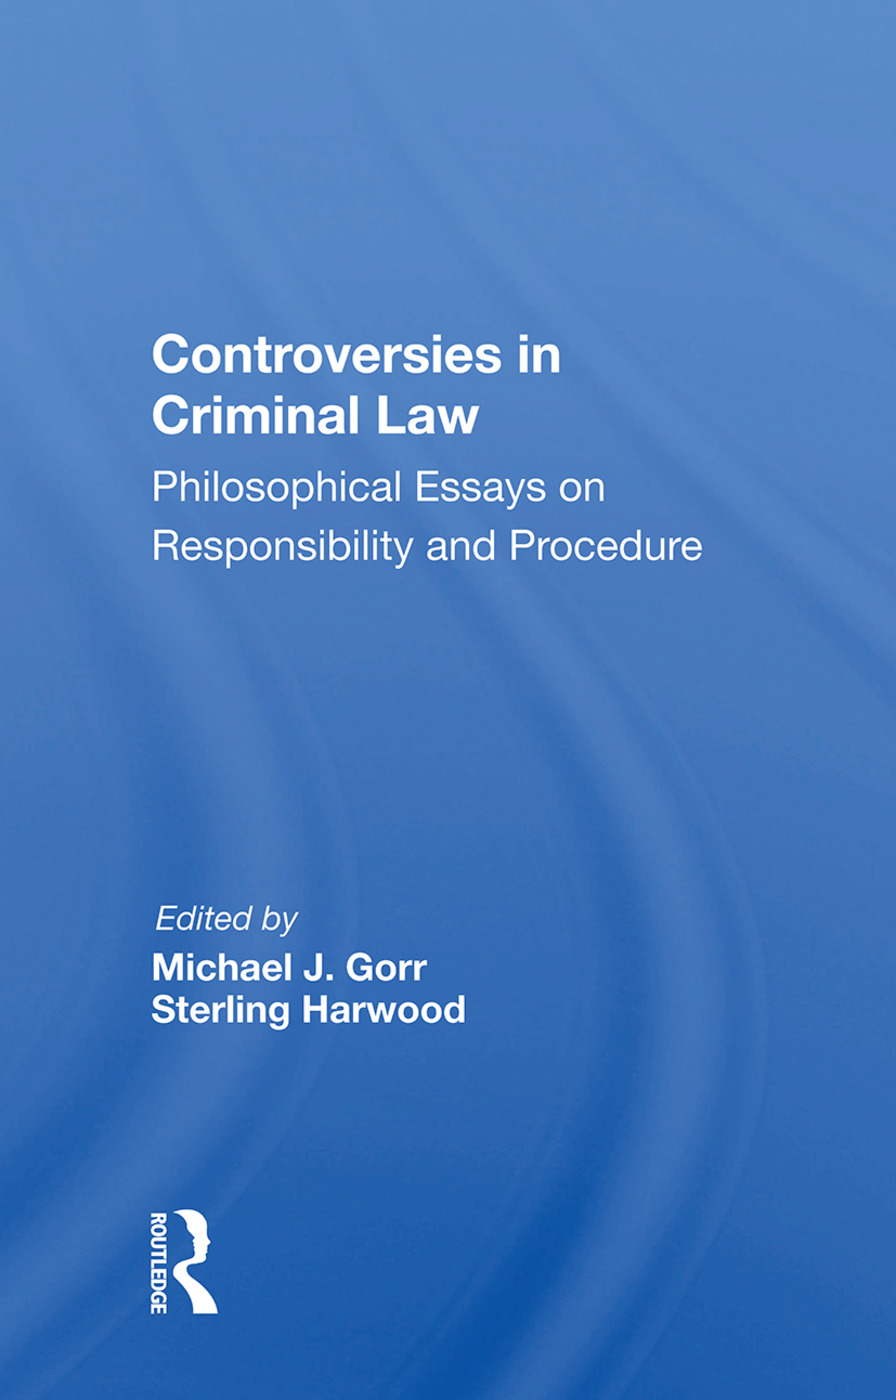 Controversies in Criminal Law: Philosophical Essays on Responsibility and Procedure book cover